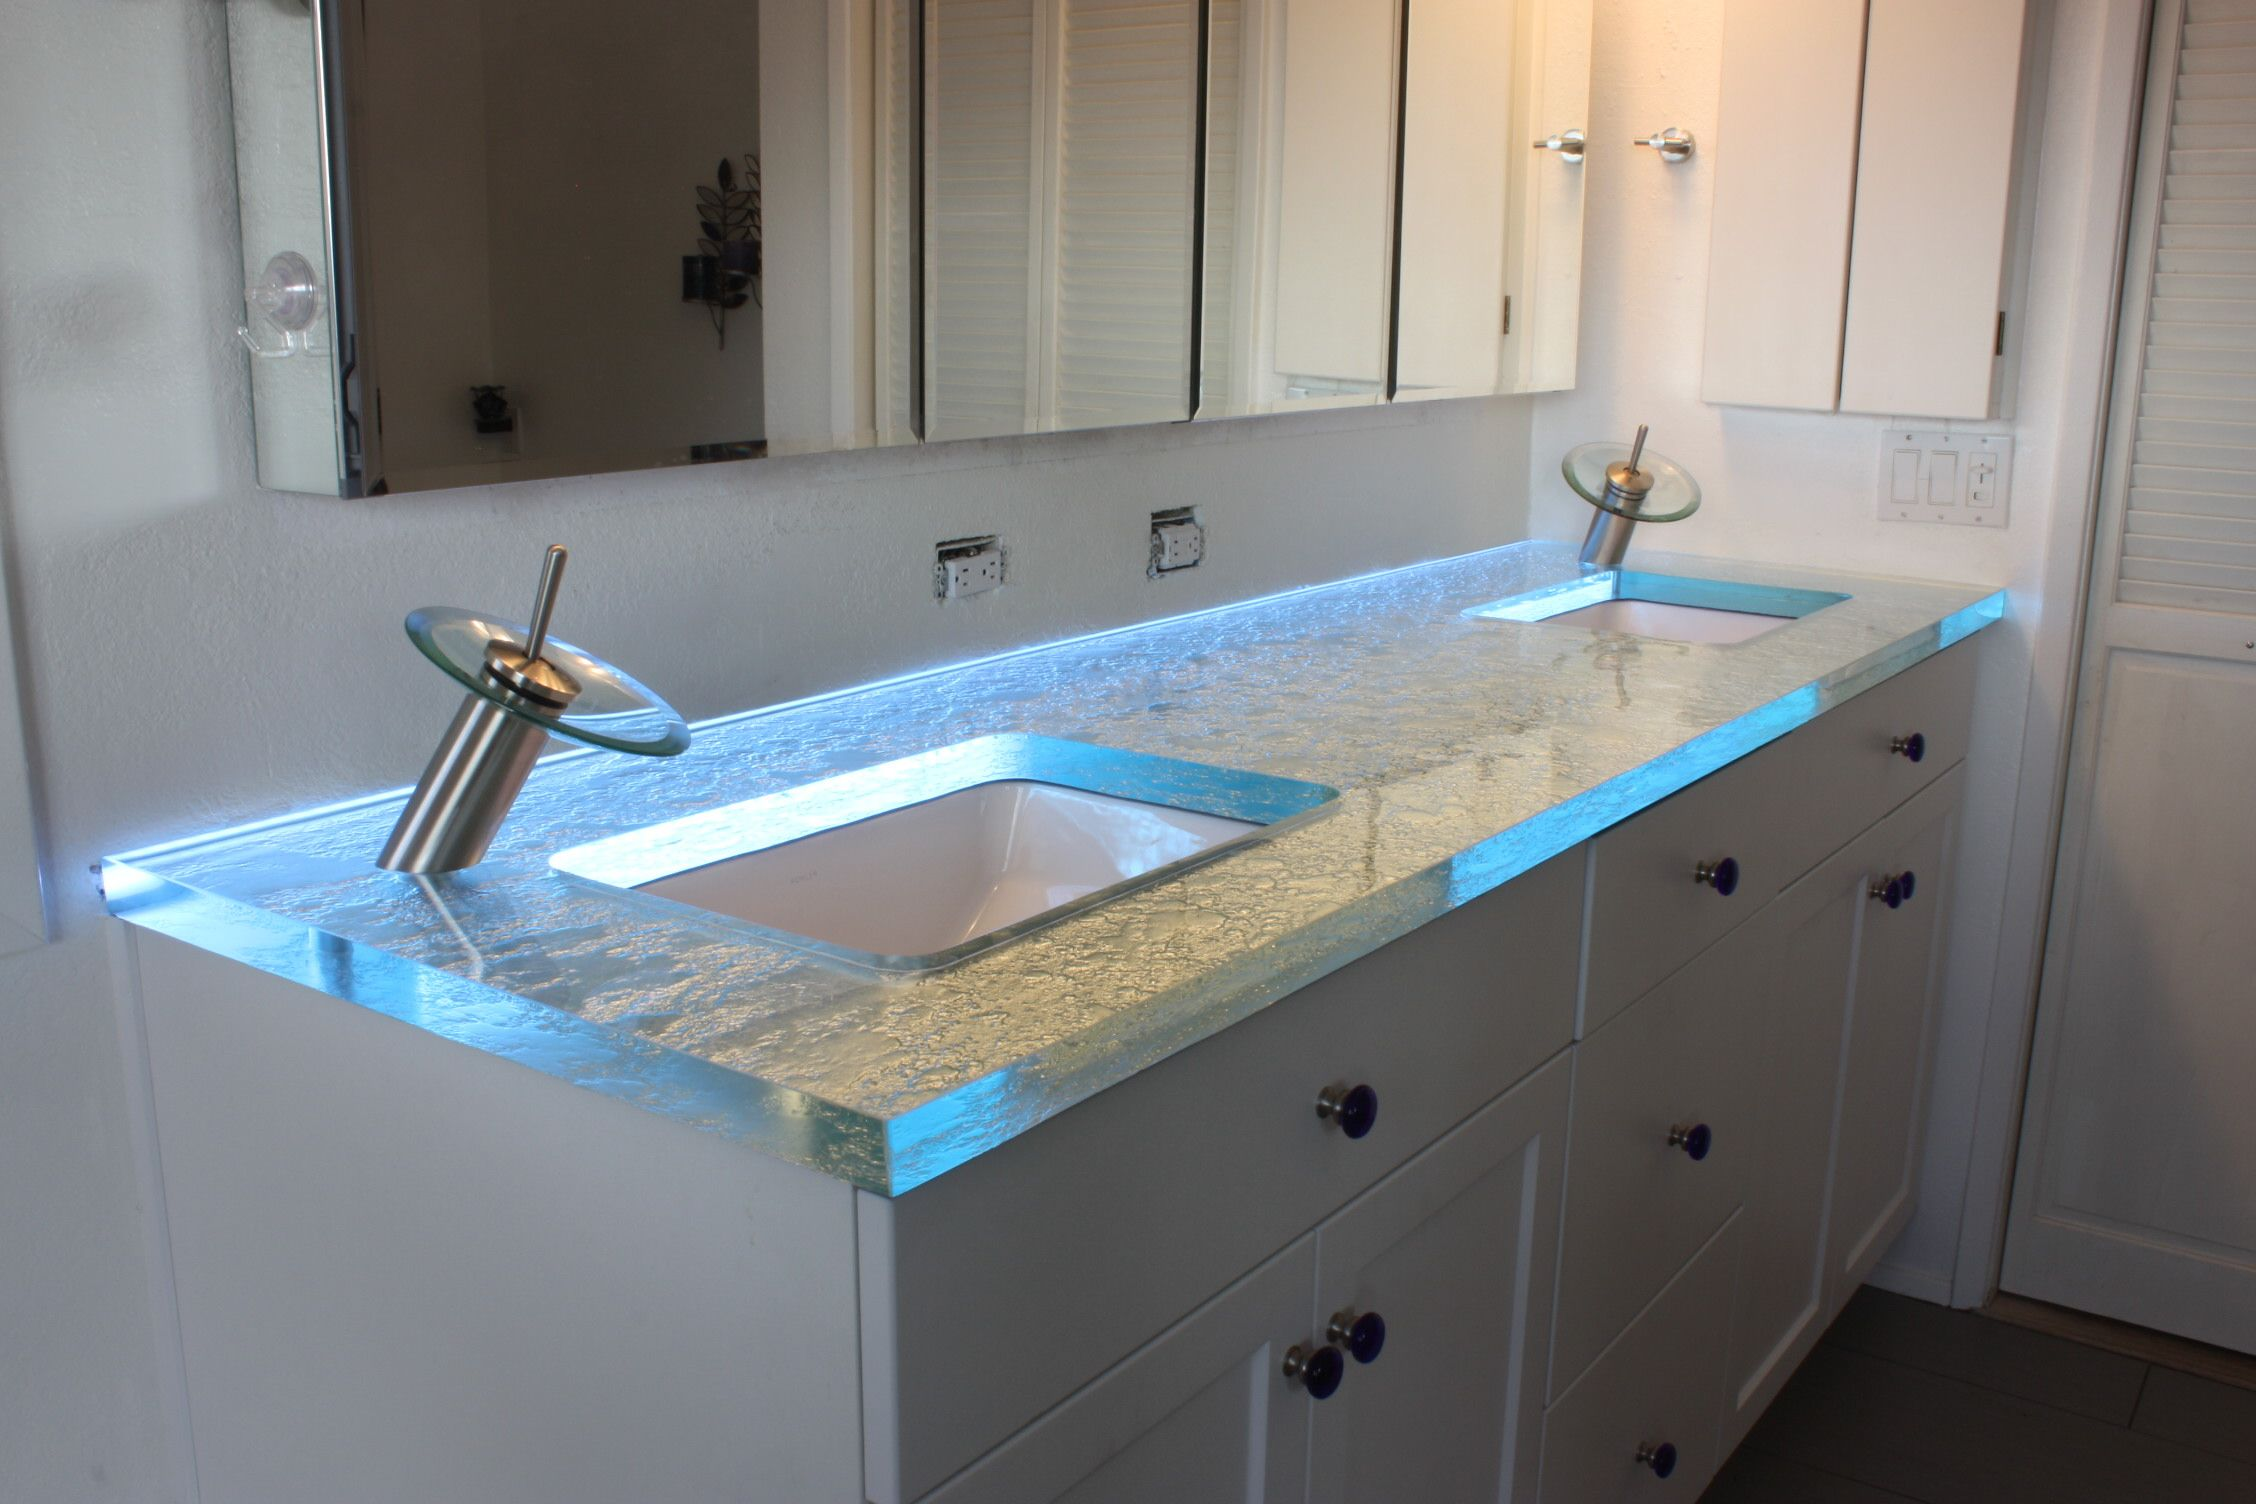 Amazing glass bathroom counter top from gravity glas led - Best led lights for bathroom vanity ...